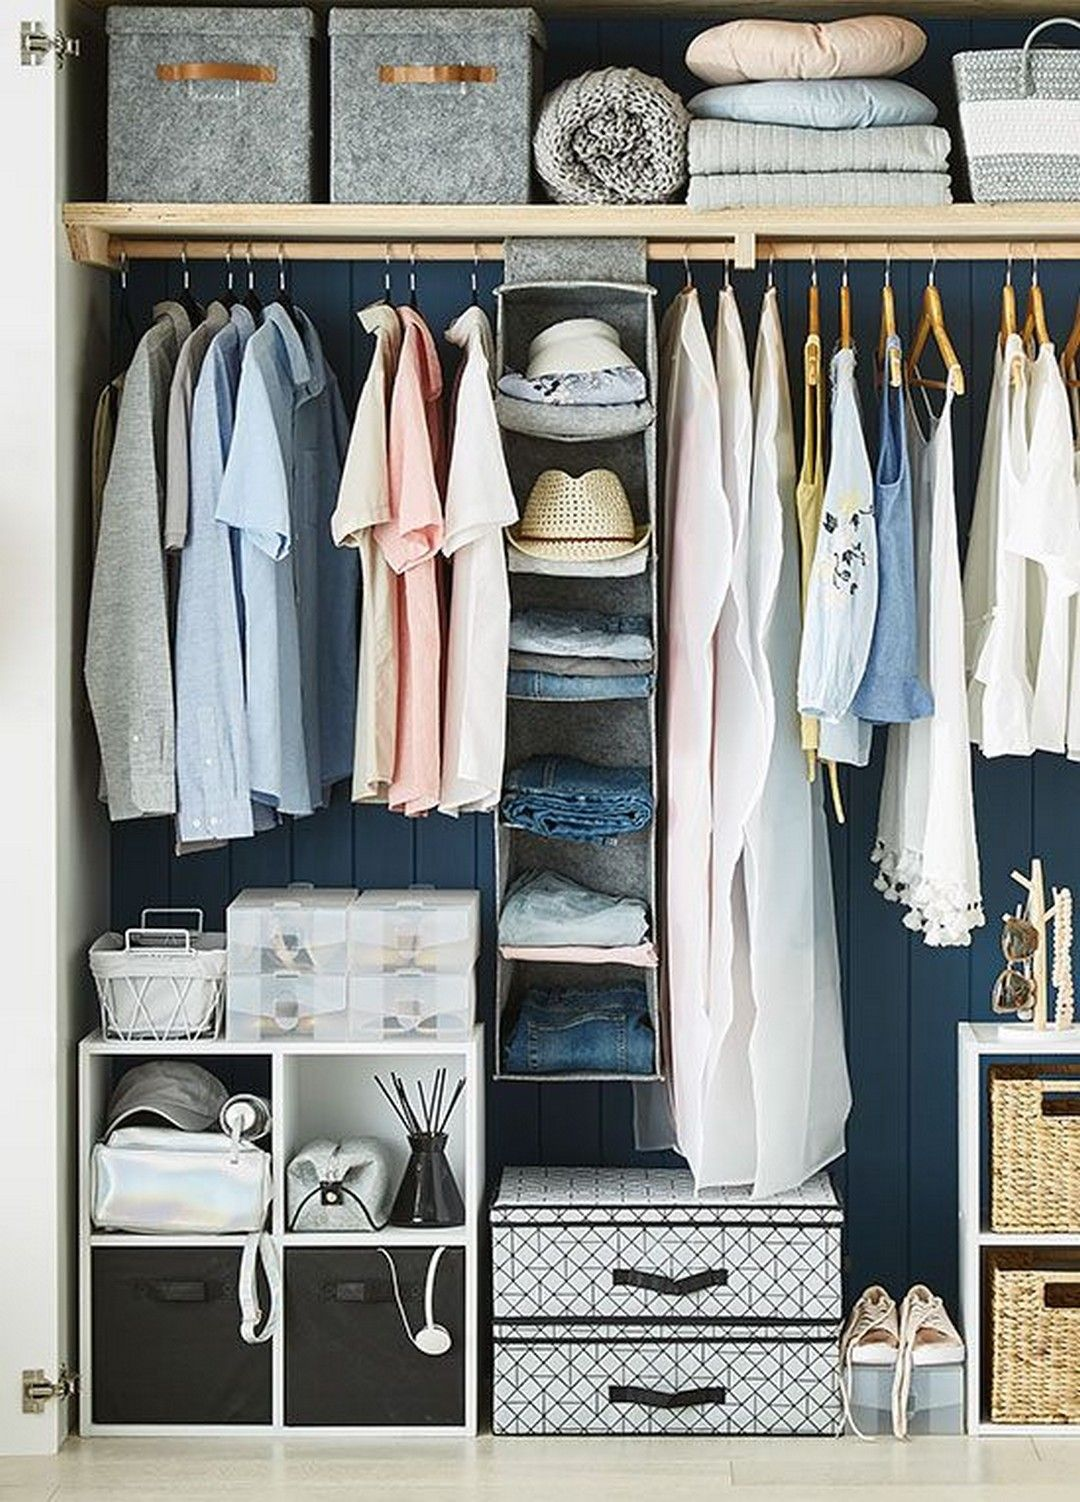 Pin By Decorsavage On Storage Ideas In 2019 Bedroom Wardrobe